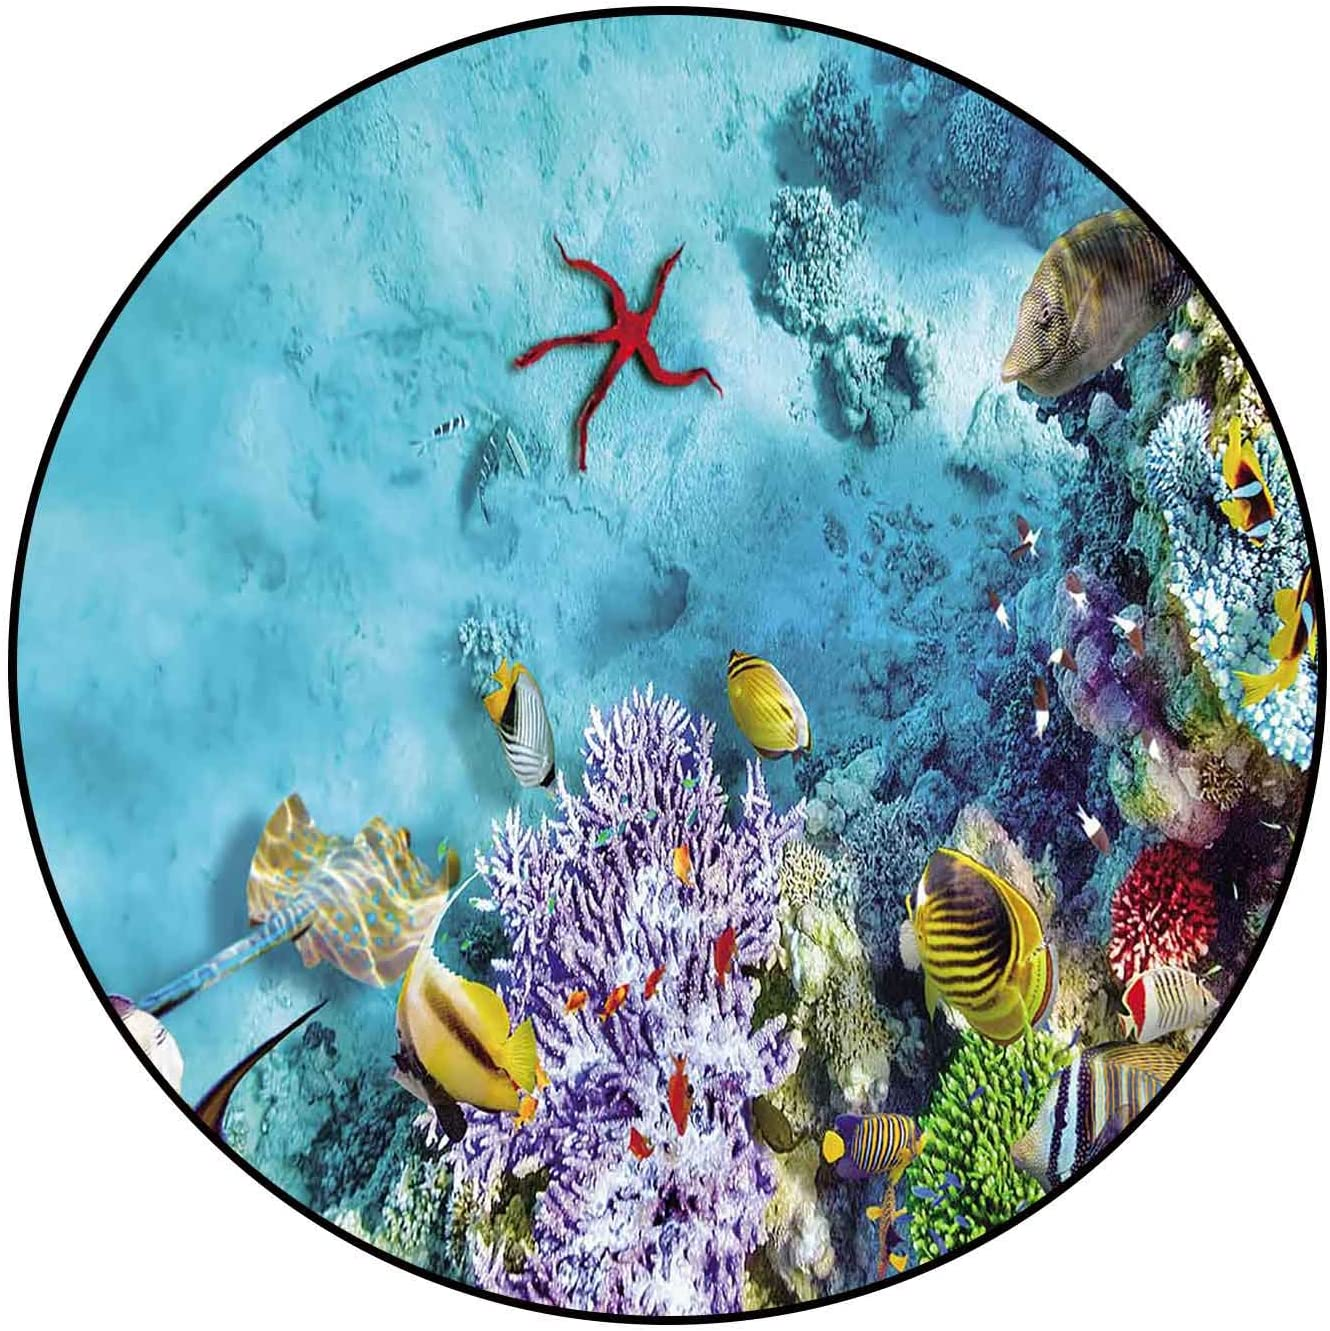 Protective Cushioning Rug Pad Beautiful Underwater and Wonderful Max 74% OFF Popular product